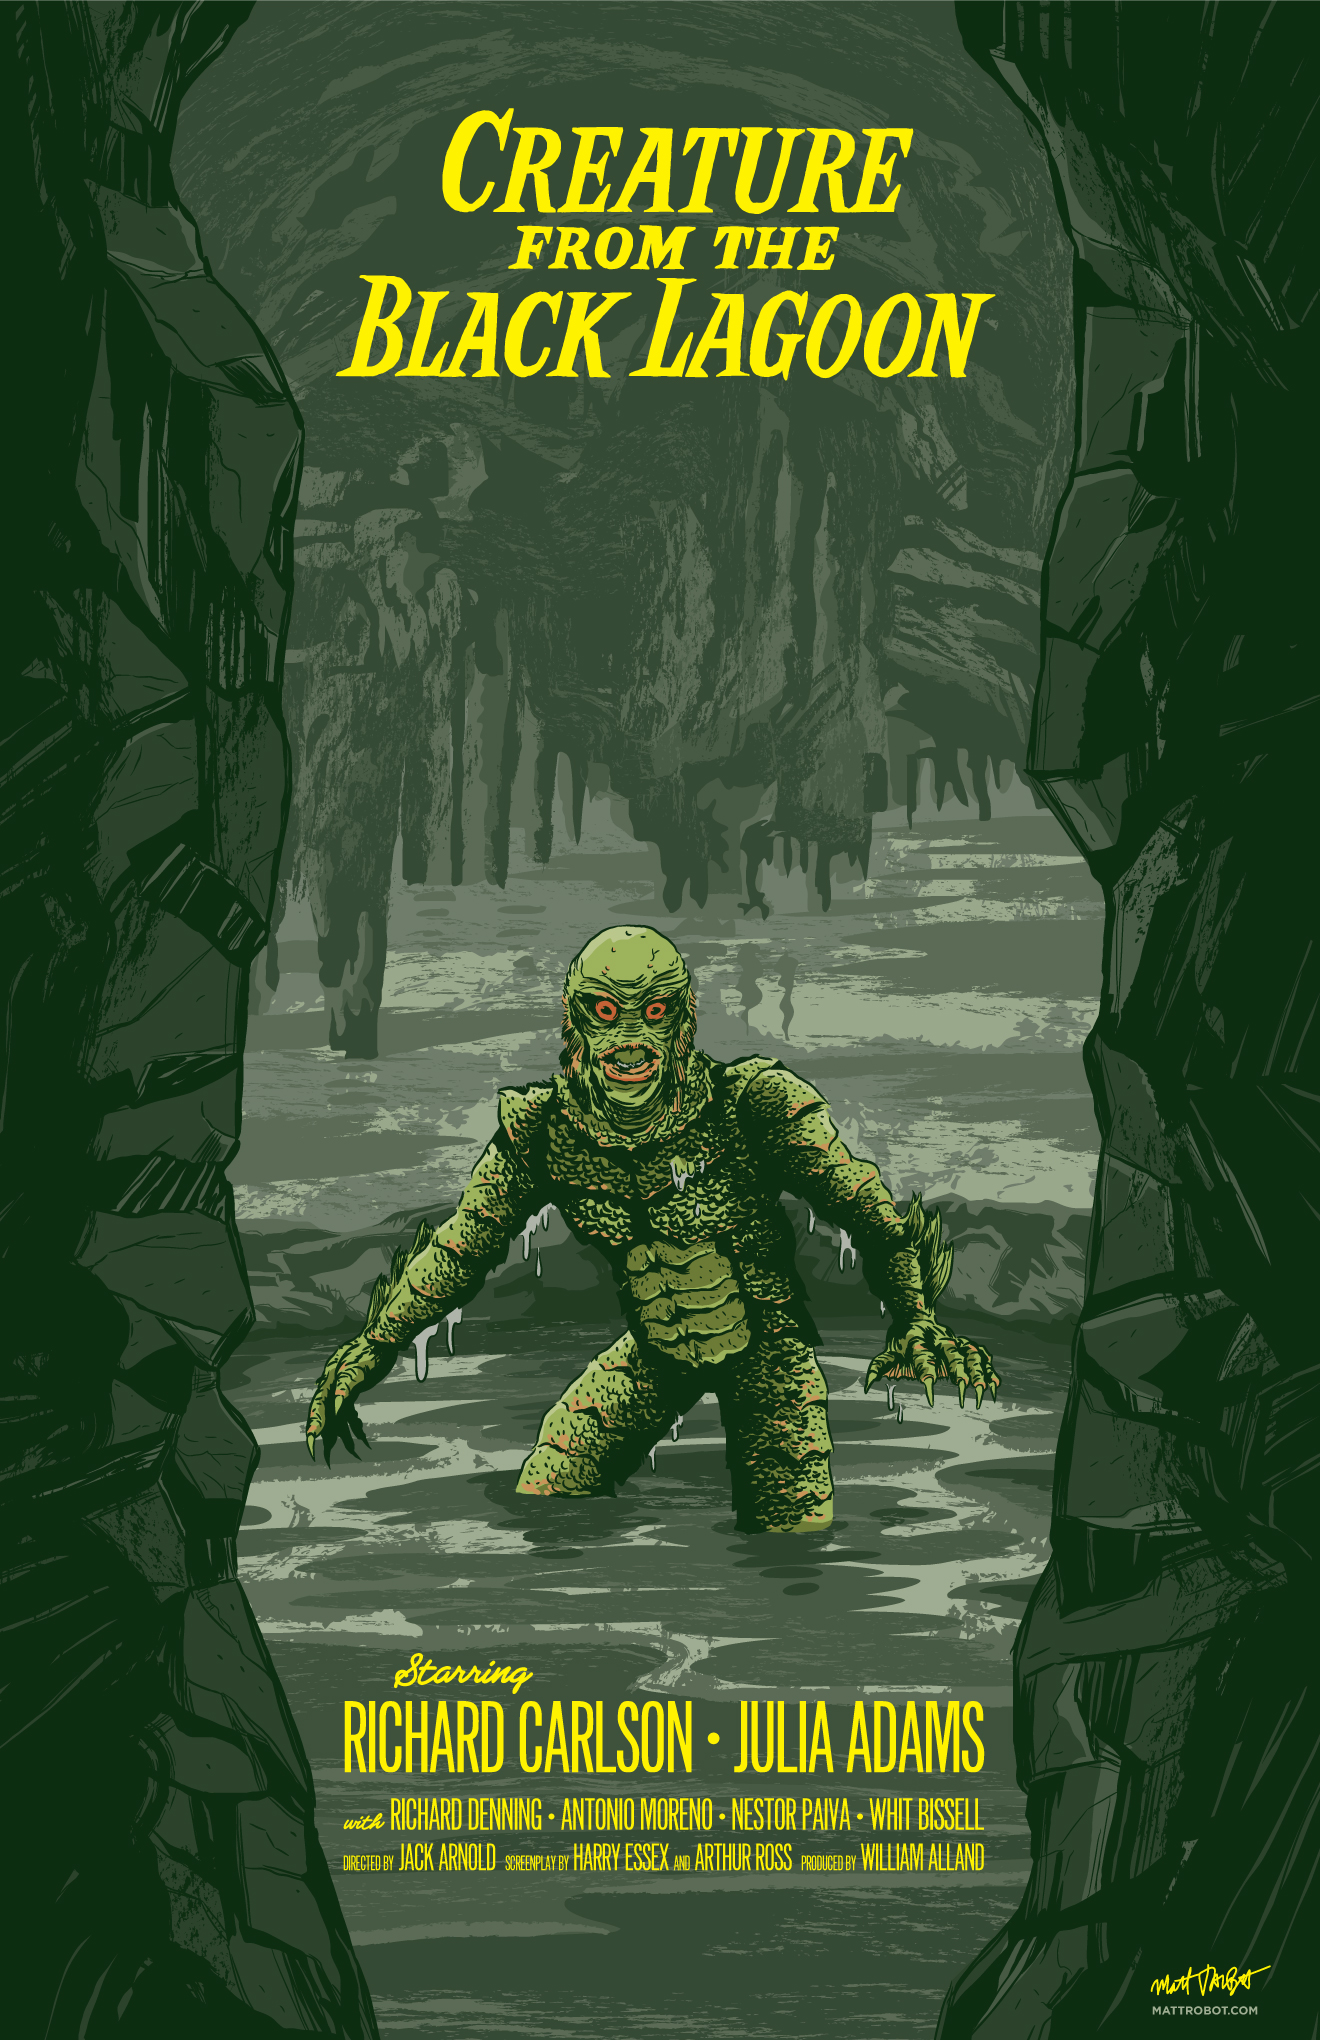 Creature from the Black Lagoon poster by Matt Talbot